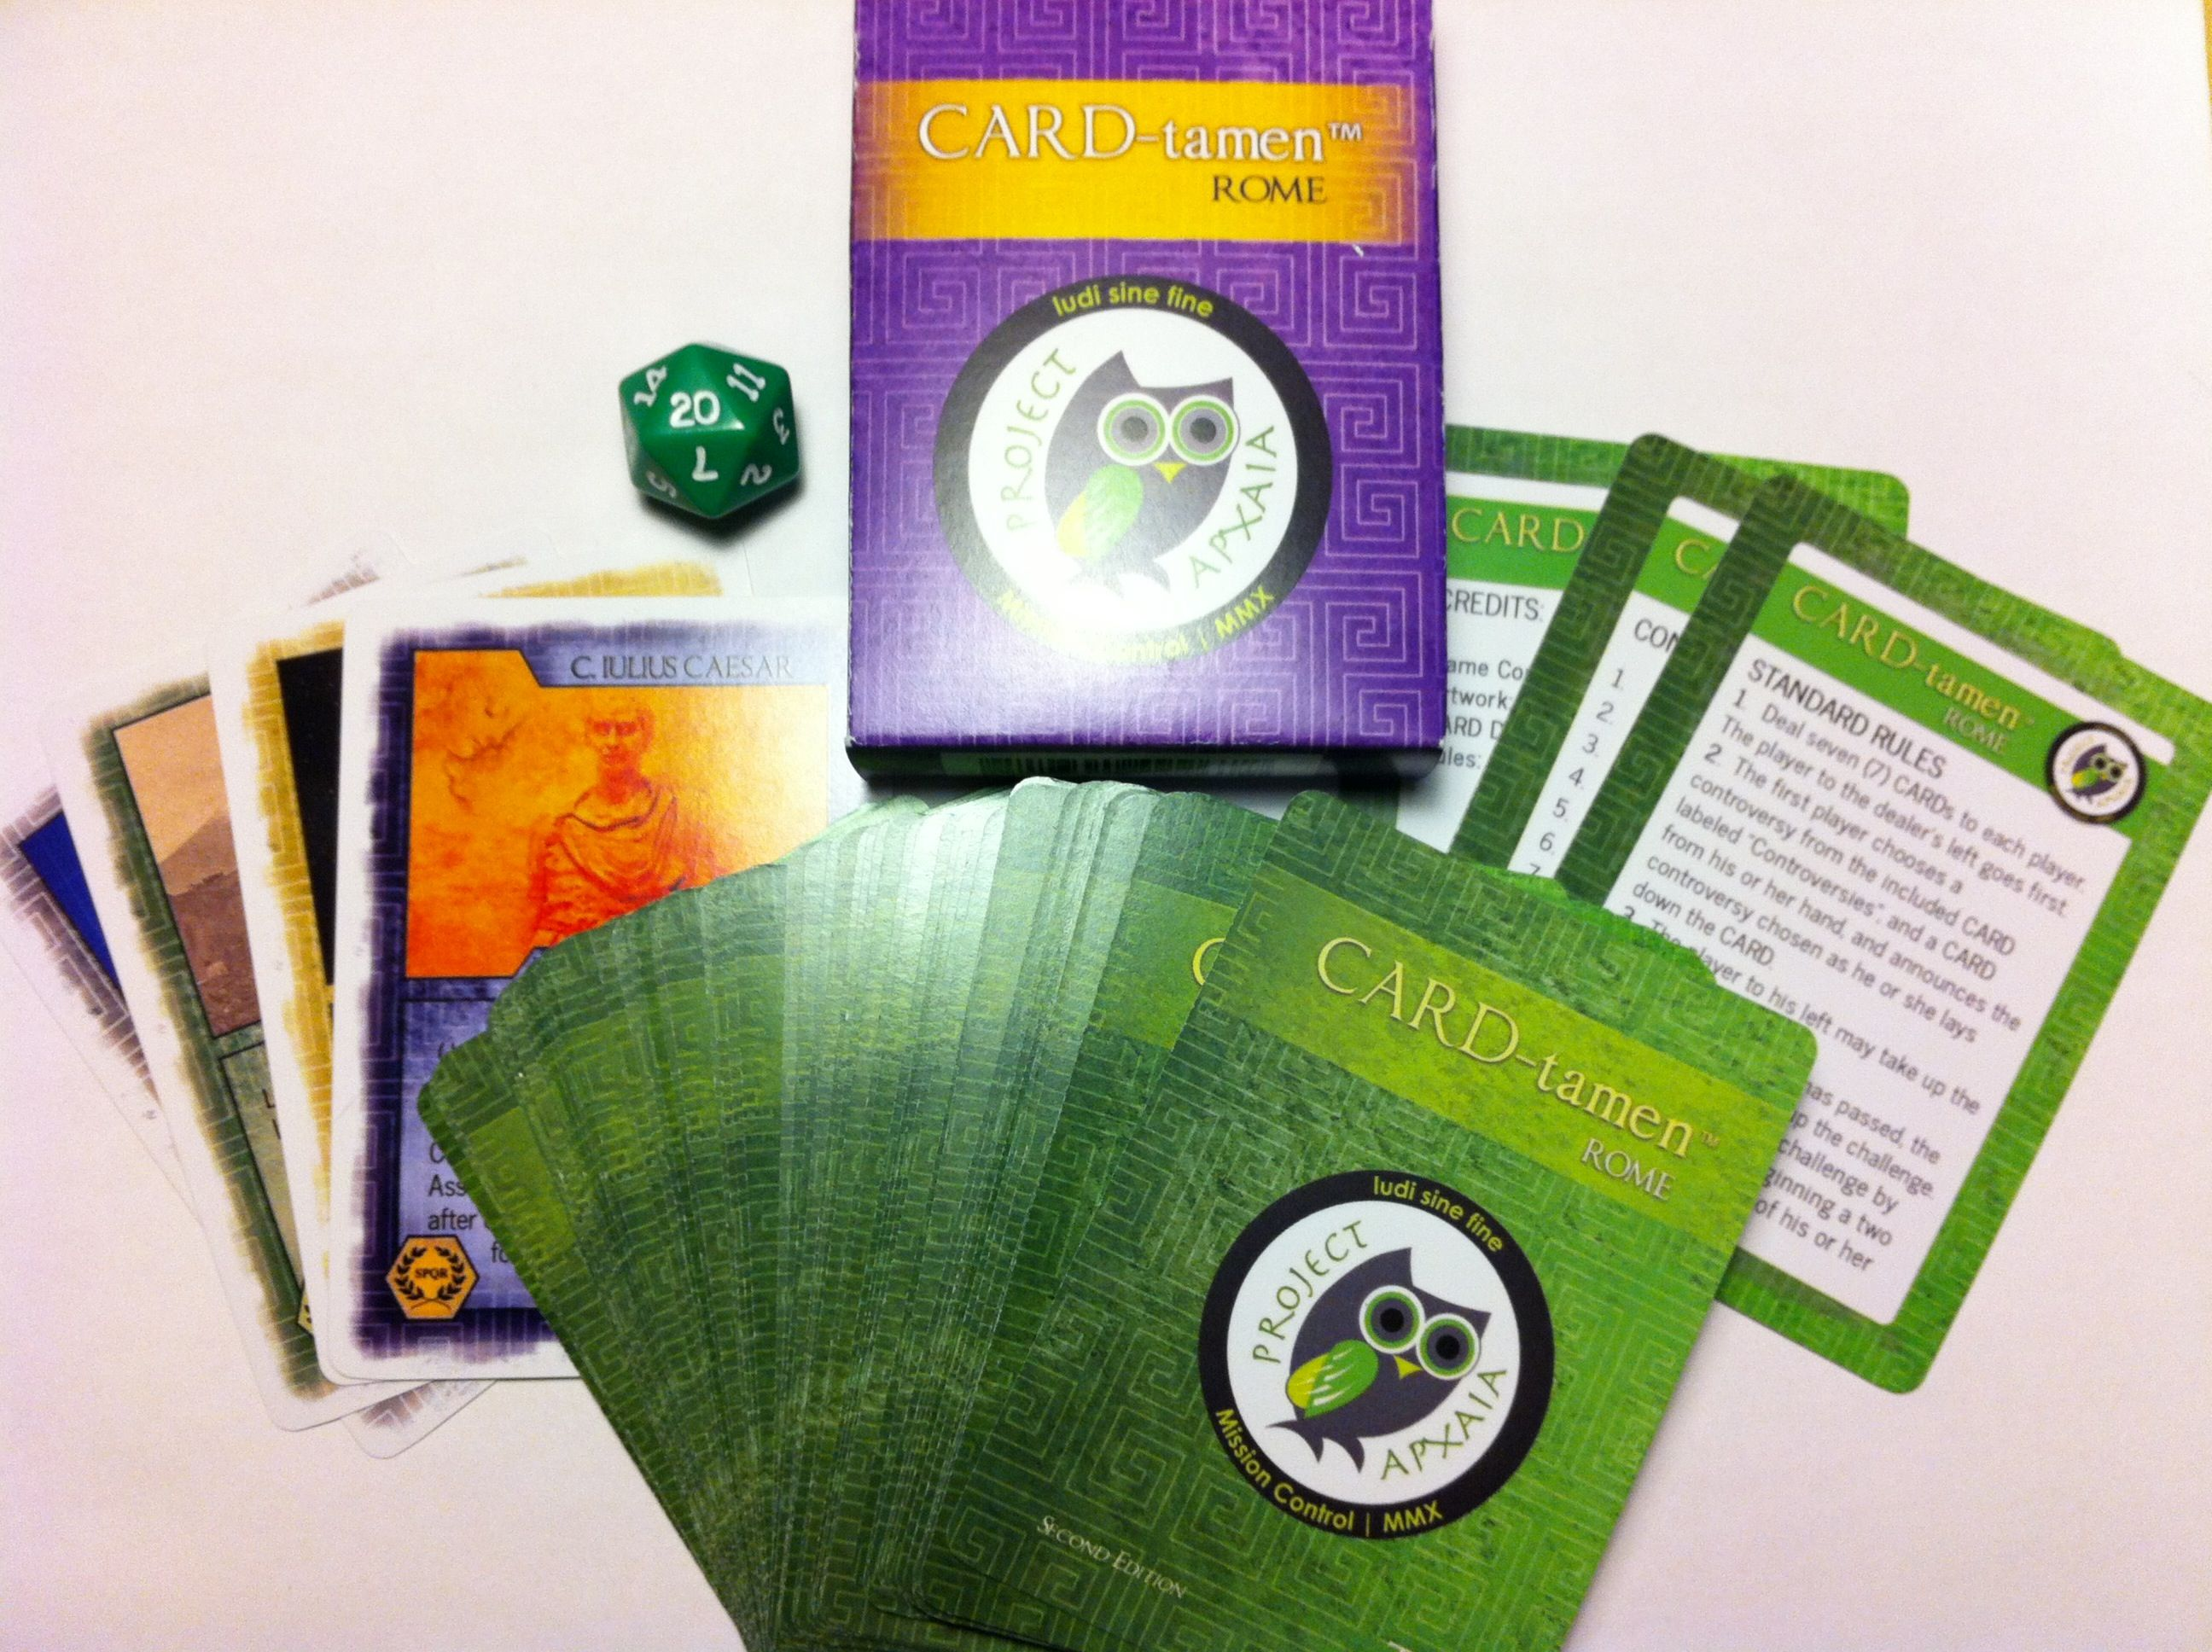 Card Tamen Is An Exciting New Educational Card Game